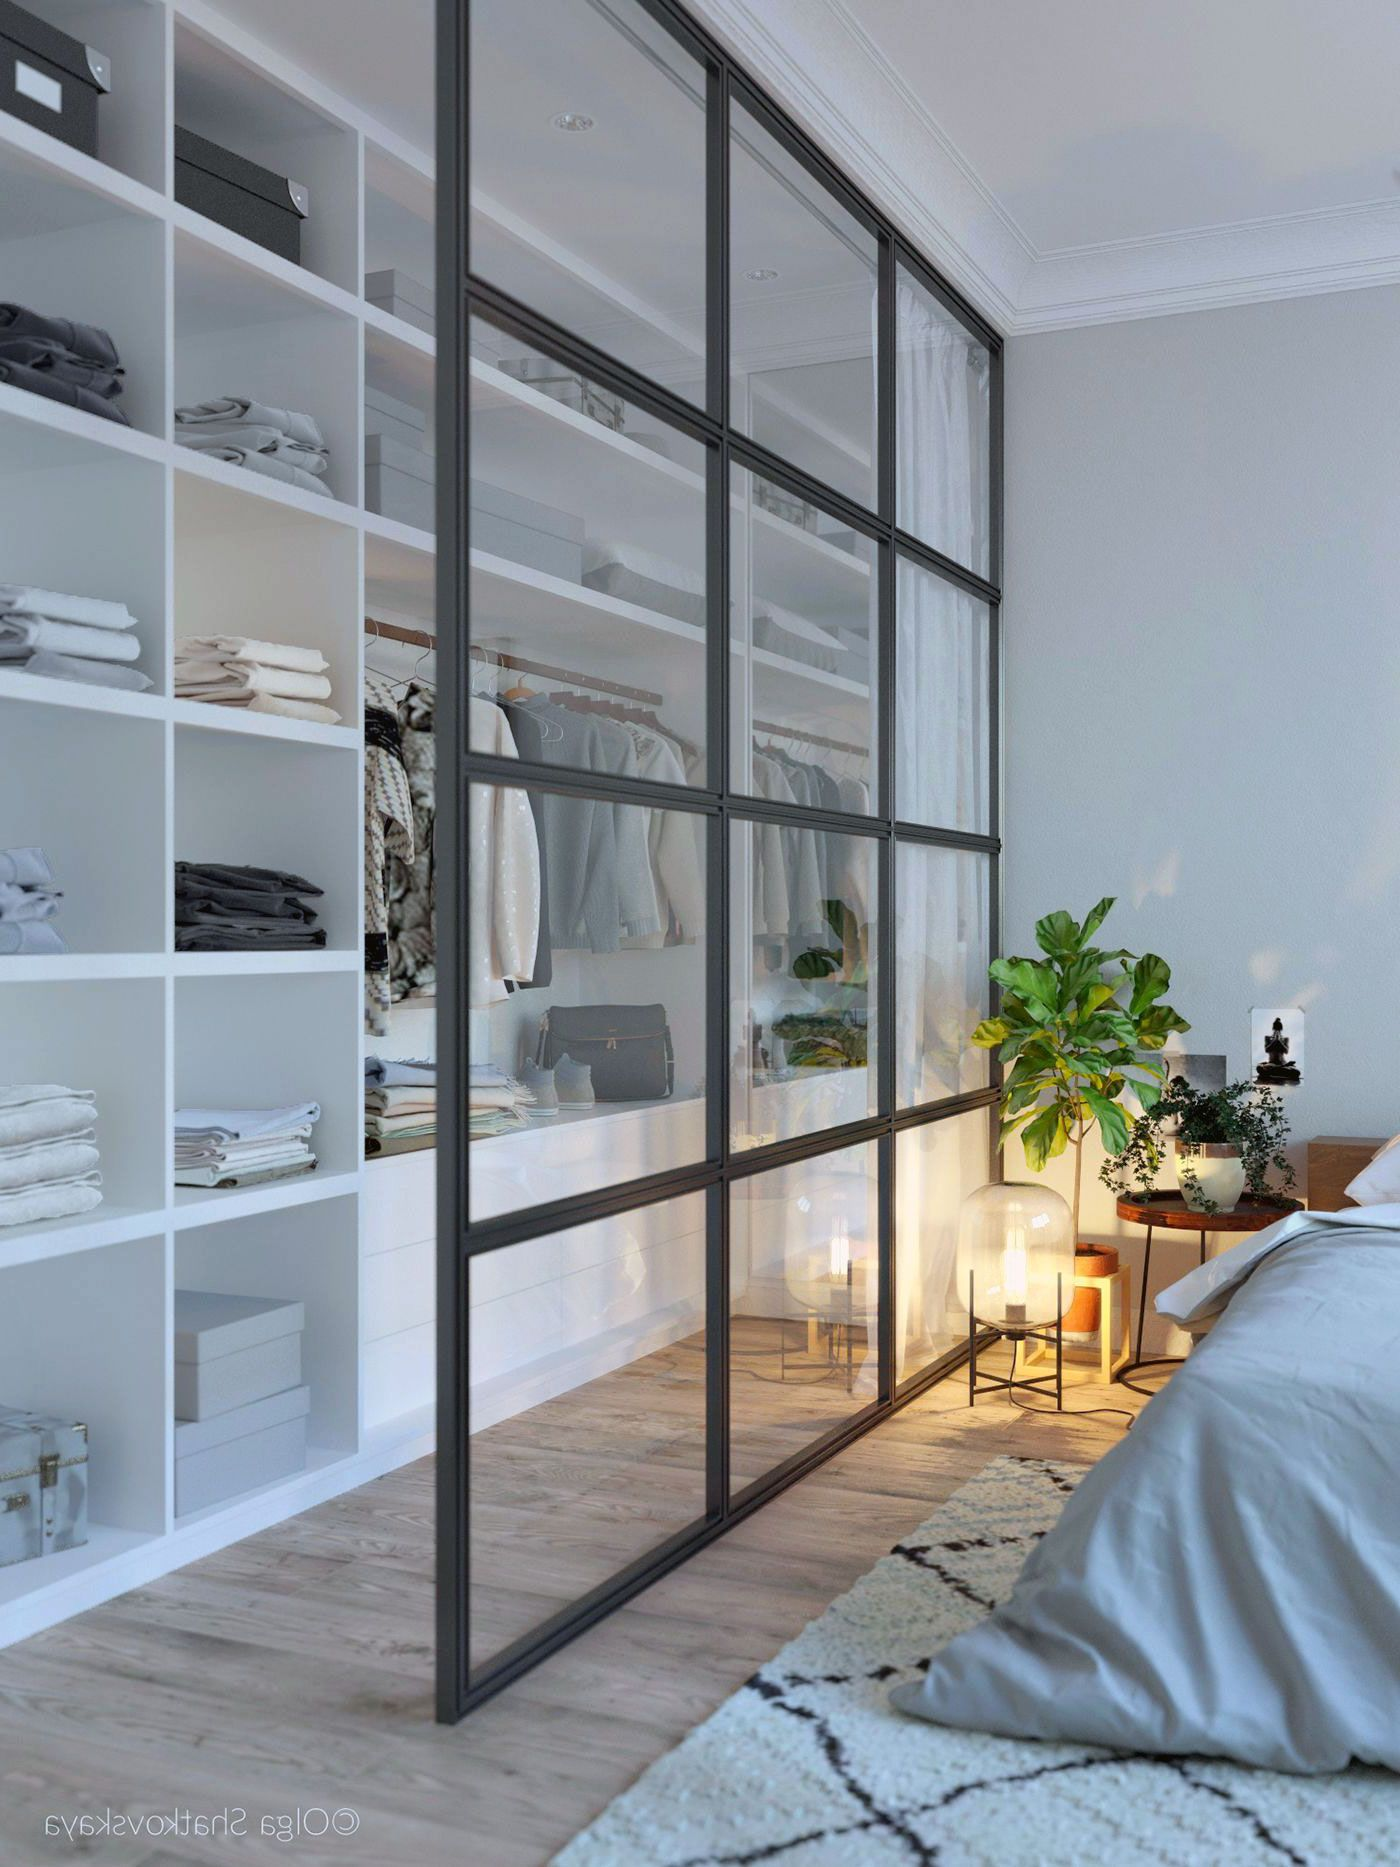 26 Awesome Scandinavian Bedroom Wardrobe Ideas In 2020 Scandinavian Interior Bedroom Scandinavian Design Bedroom Bedroom Interior